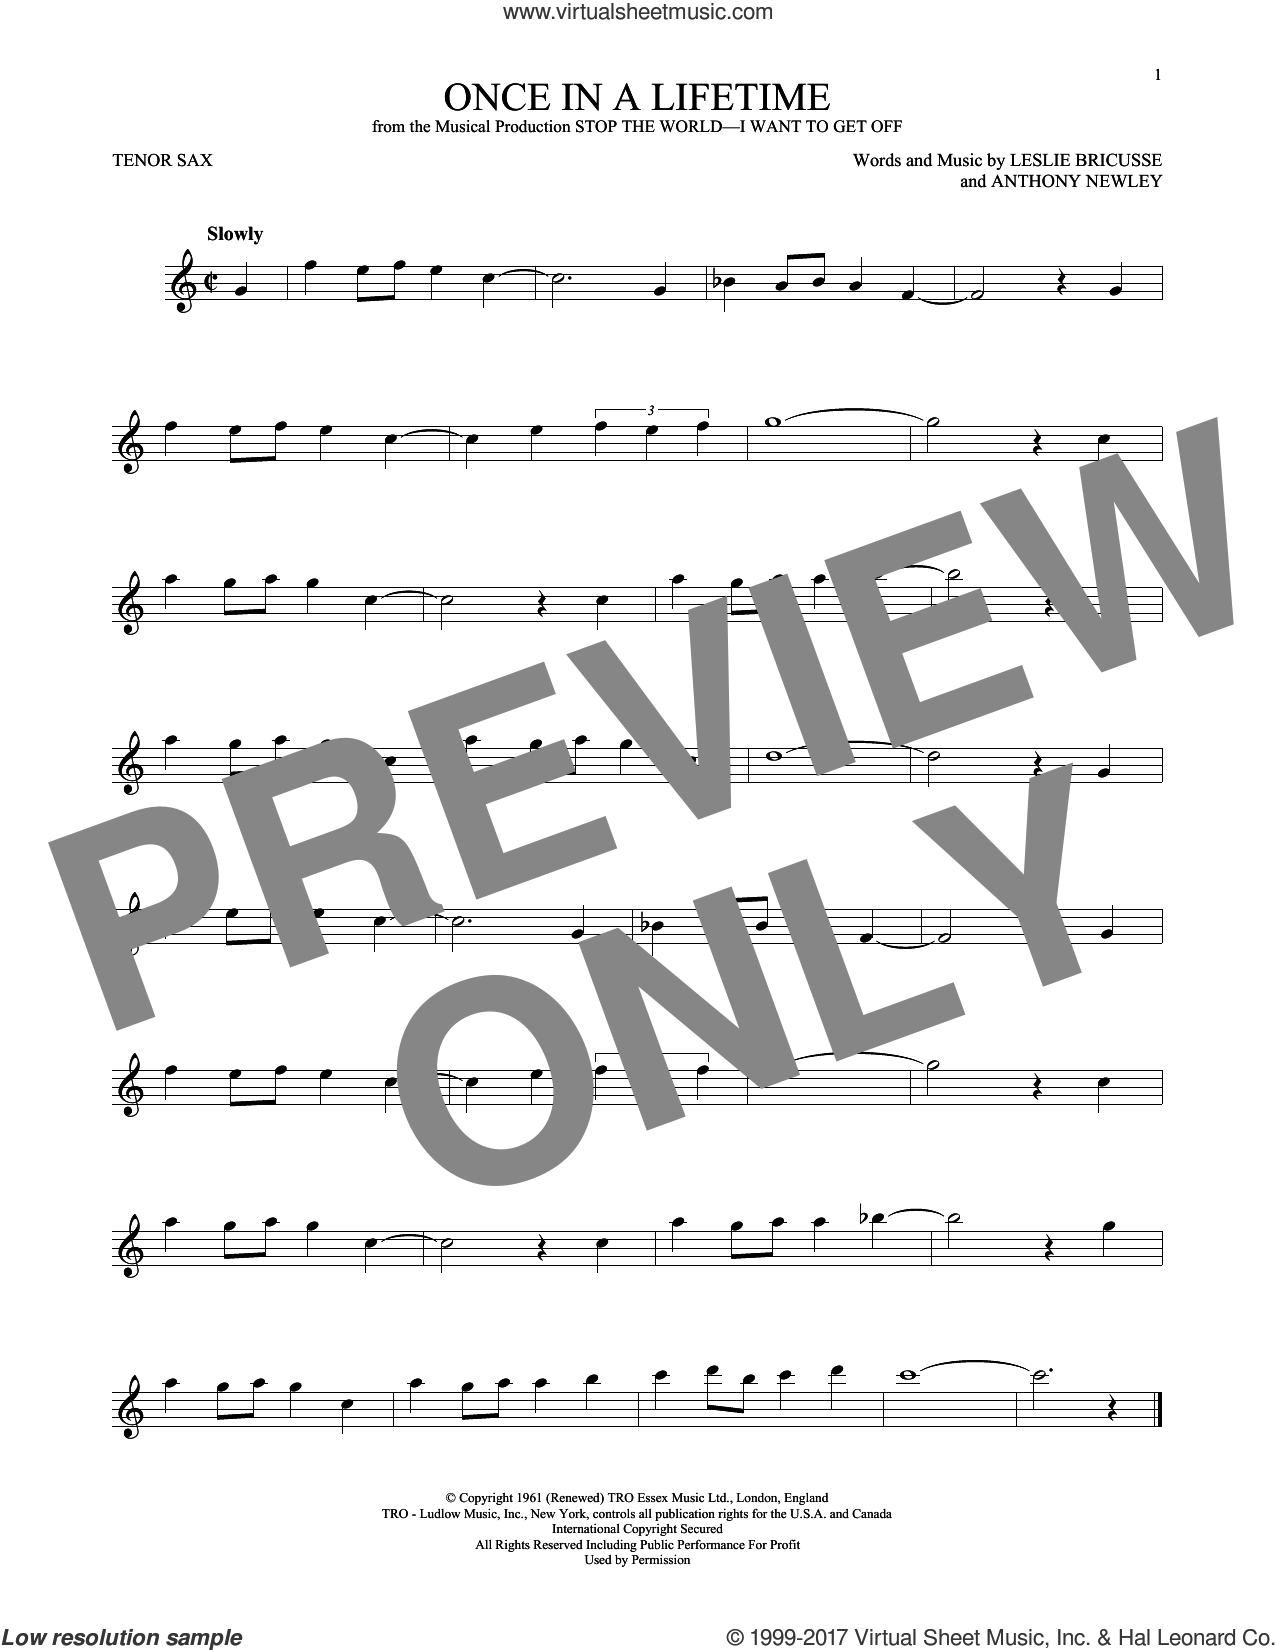 Once In A Lifetime sheet music for tenor saxophone solo by Leslie Bricusse and Anthony Newley, intermediate skill level